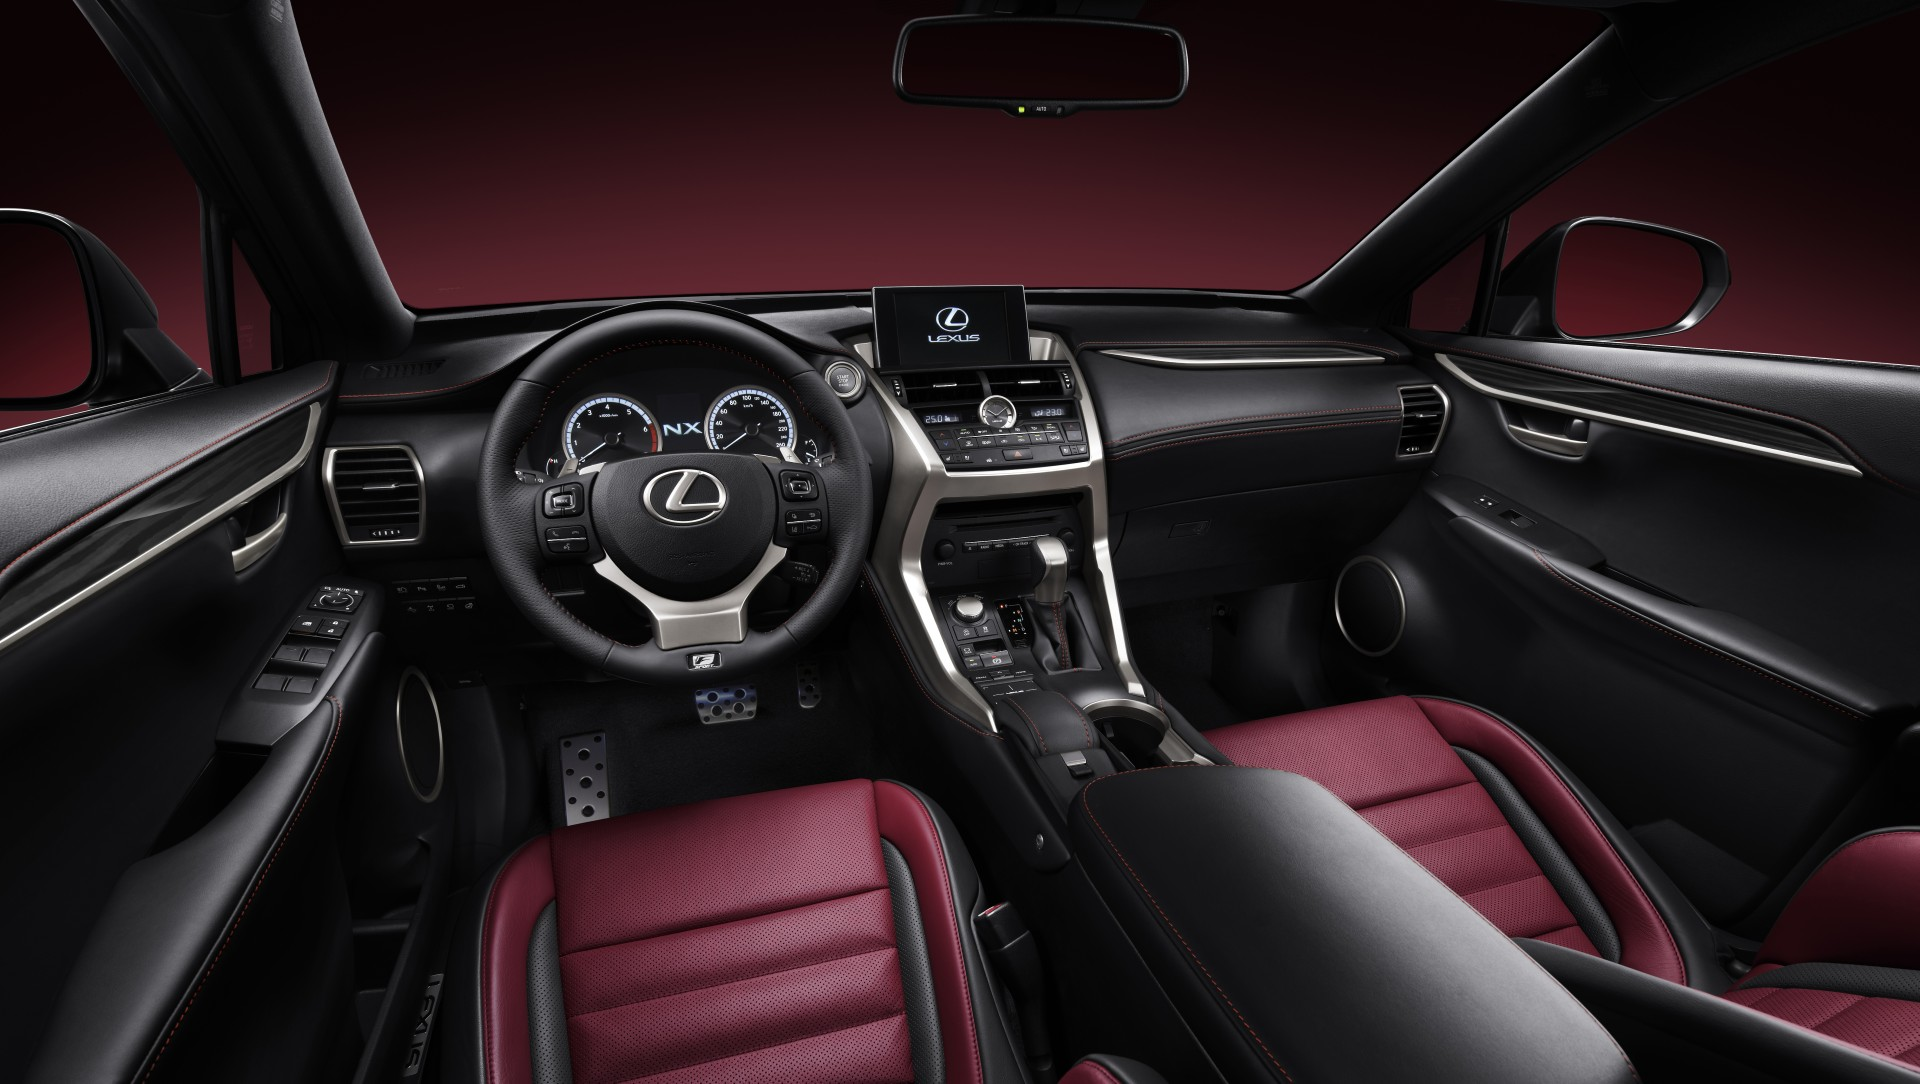 lexus cars news lexus nx official photos and first details. Black Bedroom Furniture Sets. Home Design Ideas